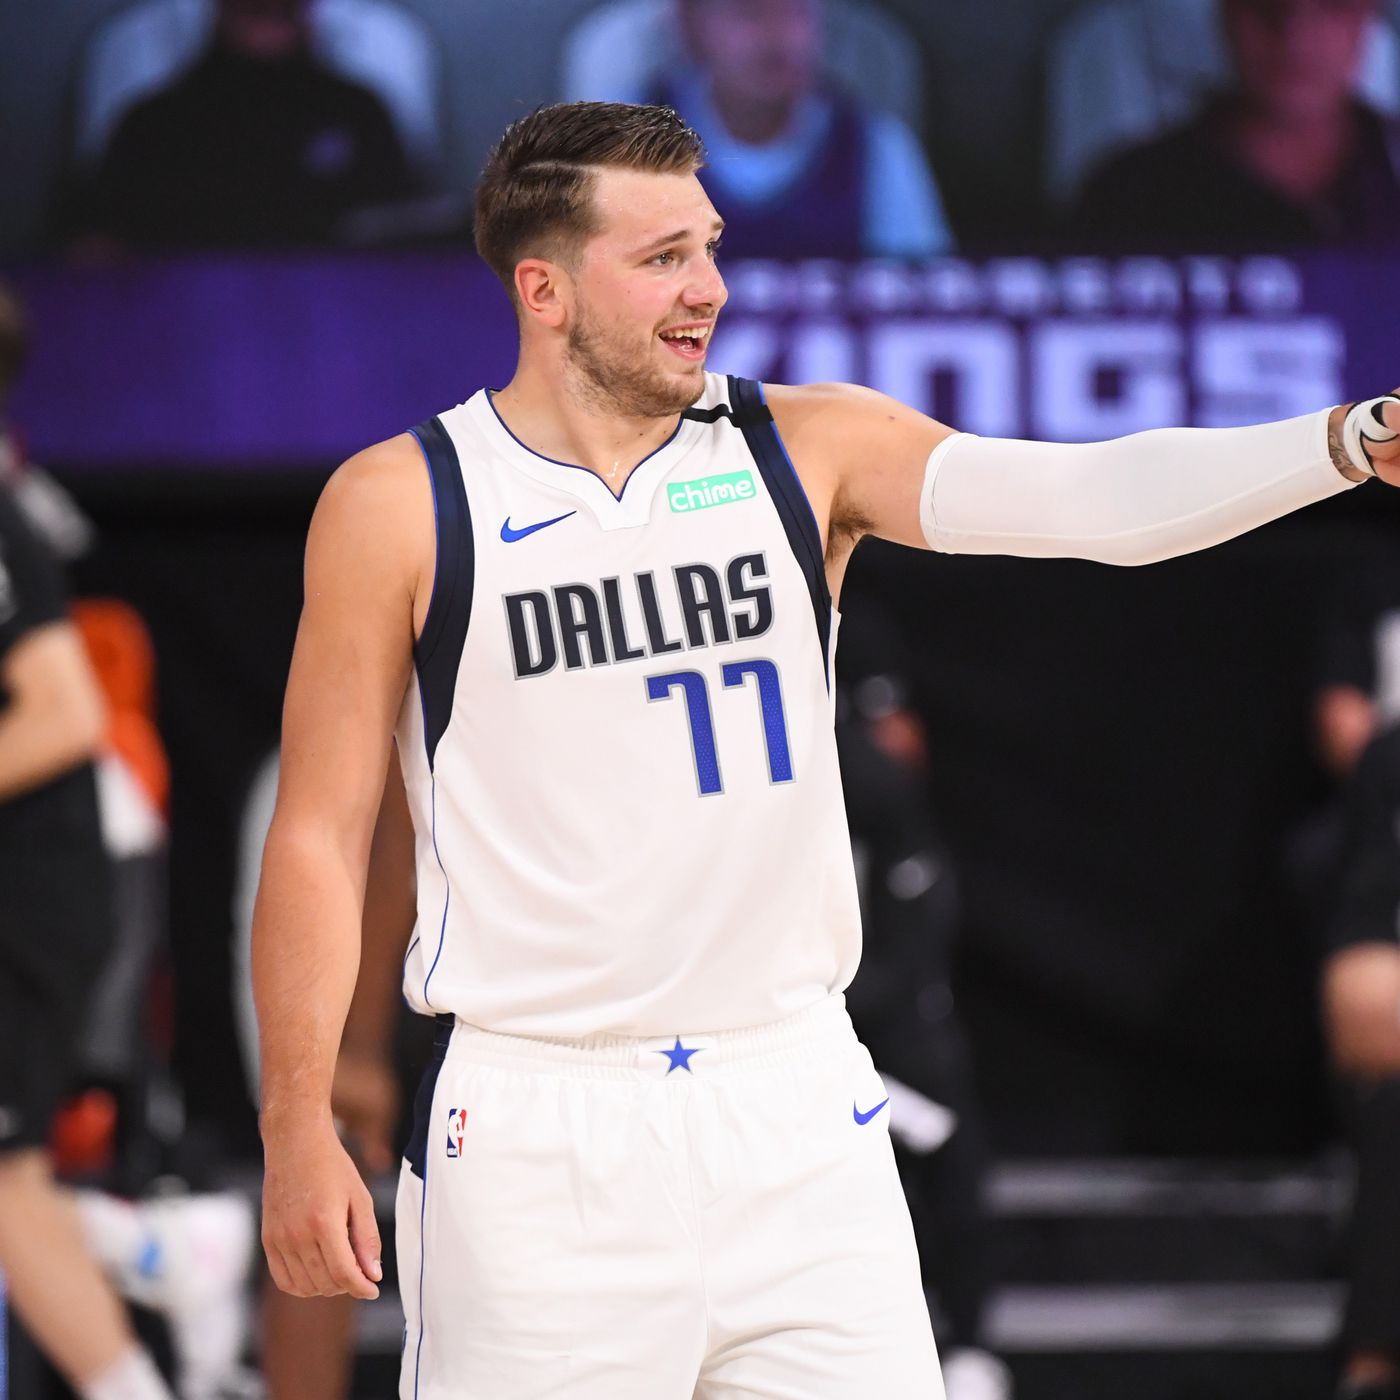 Luka Doncic Given A Special Reminder In The Nba Bubble Mavs Moneyball